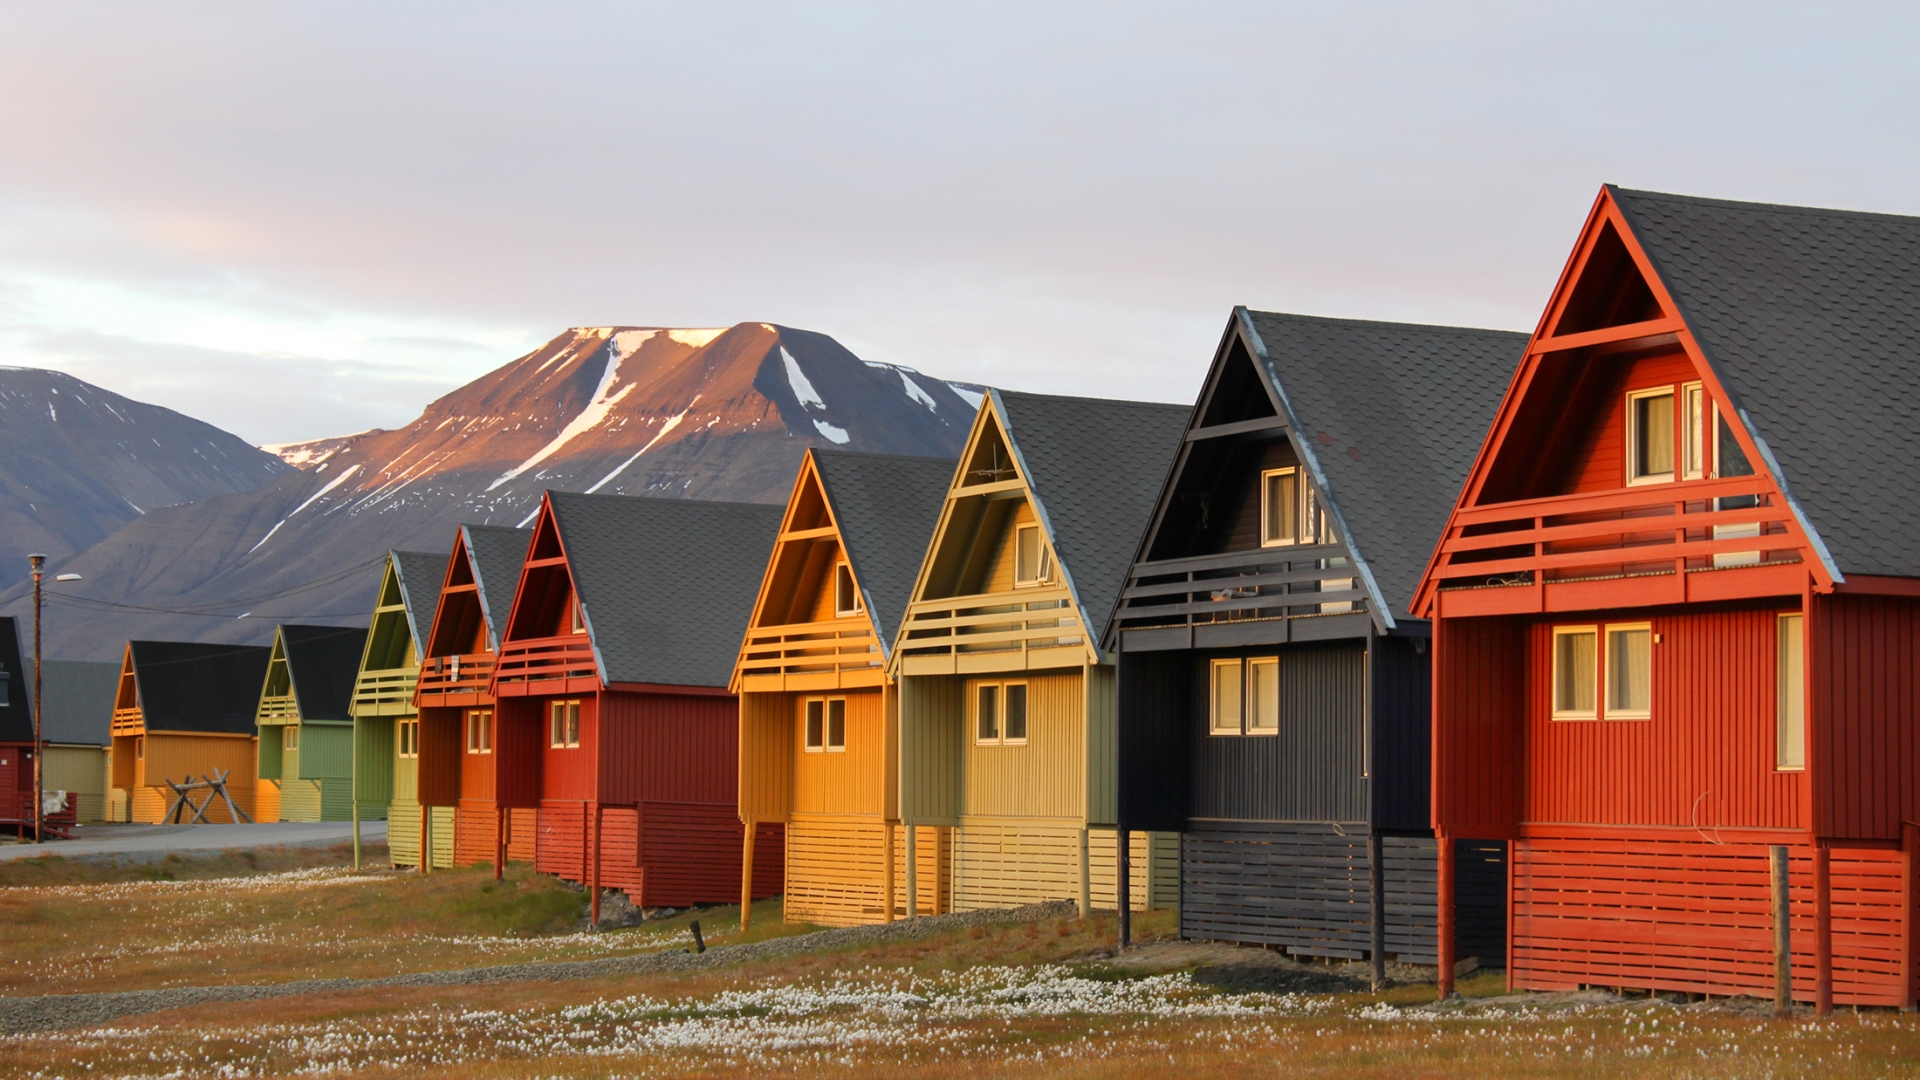 Coloured houses in Longyearbyen, Svalbard